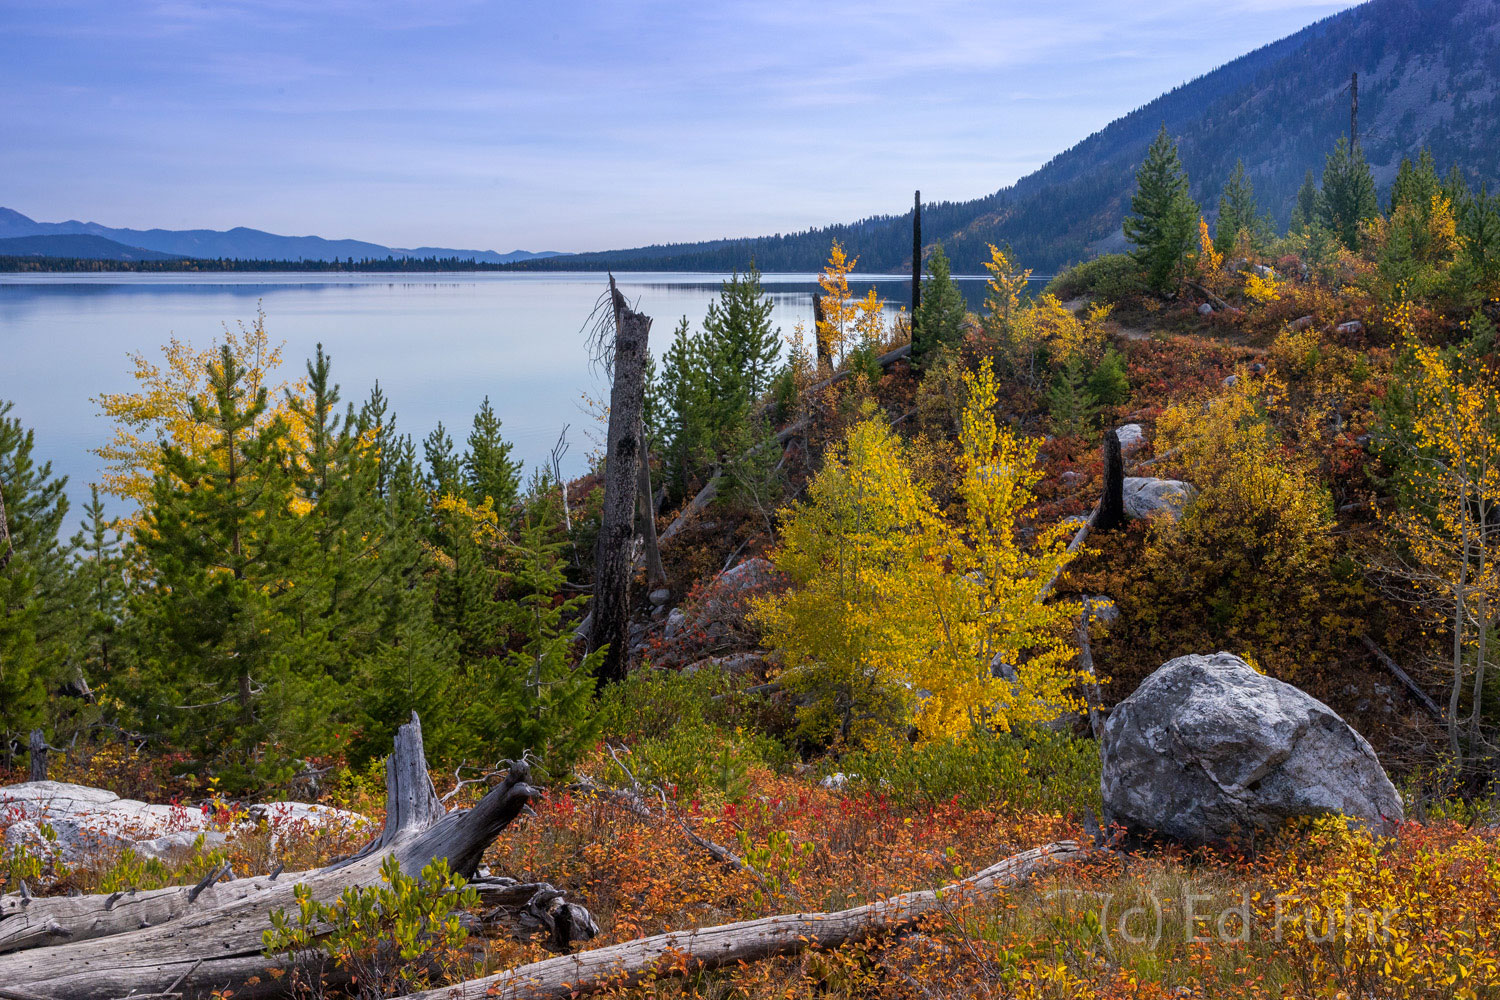 Enroute to Cascade canyon, the trail swings by the colorful berry bushes along the always scenic Jenny Lake.